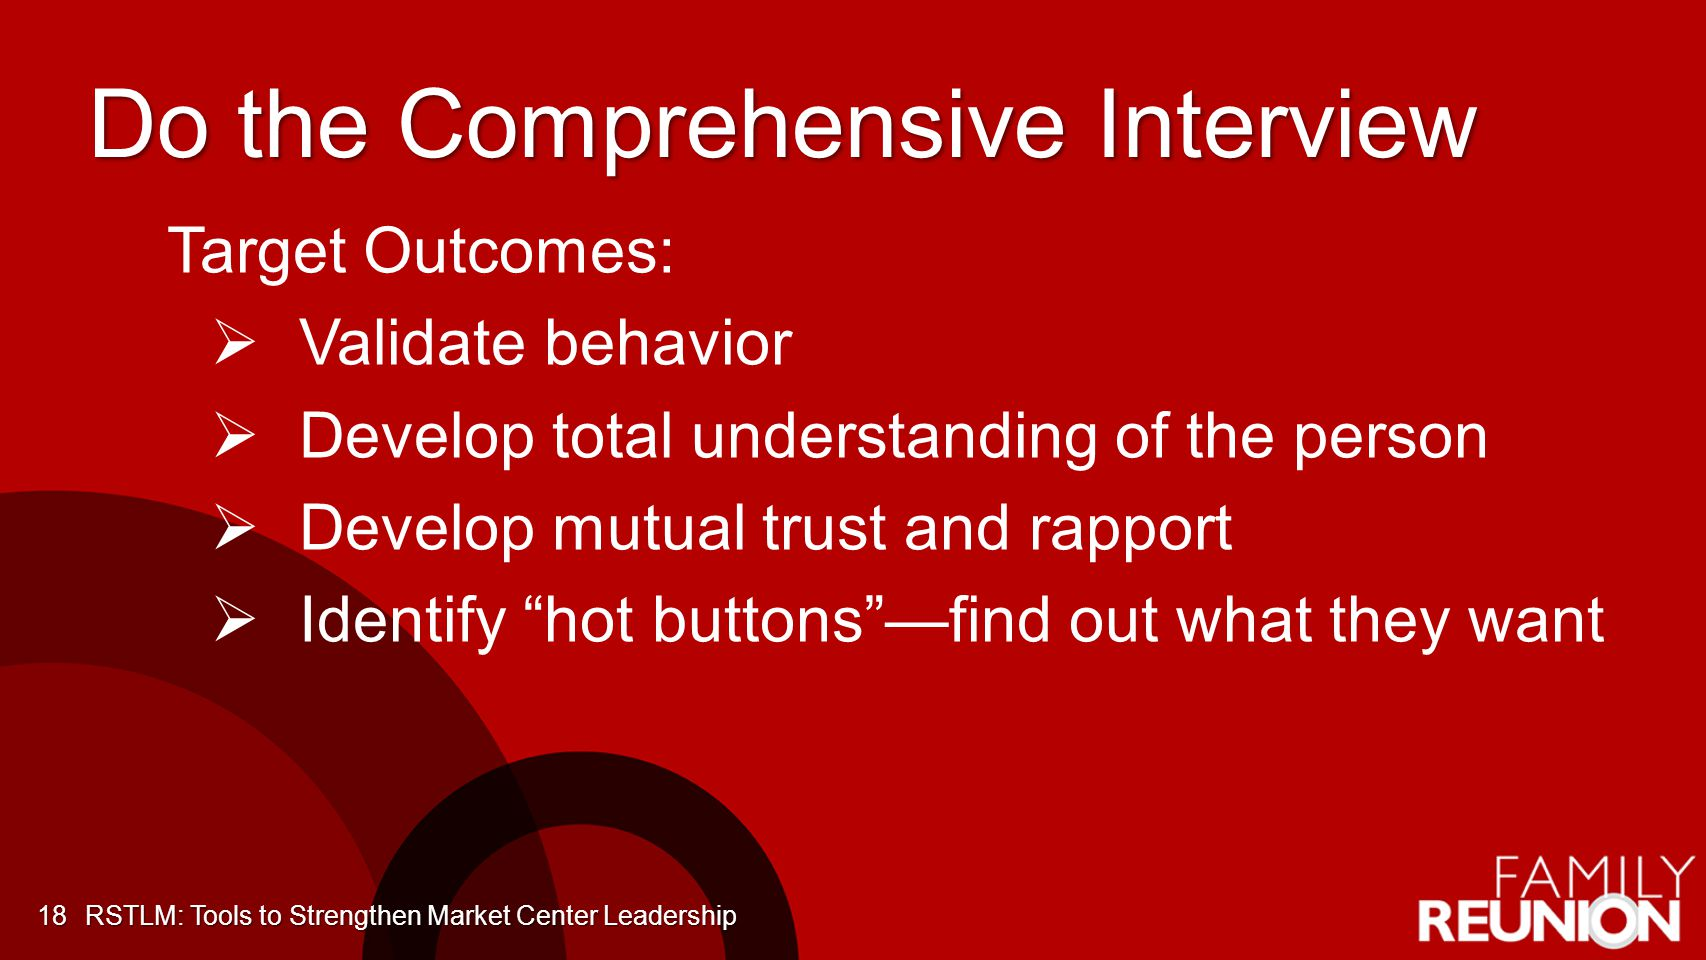 Do the Comprehensive Interview